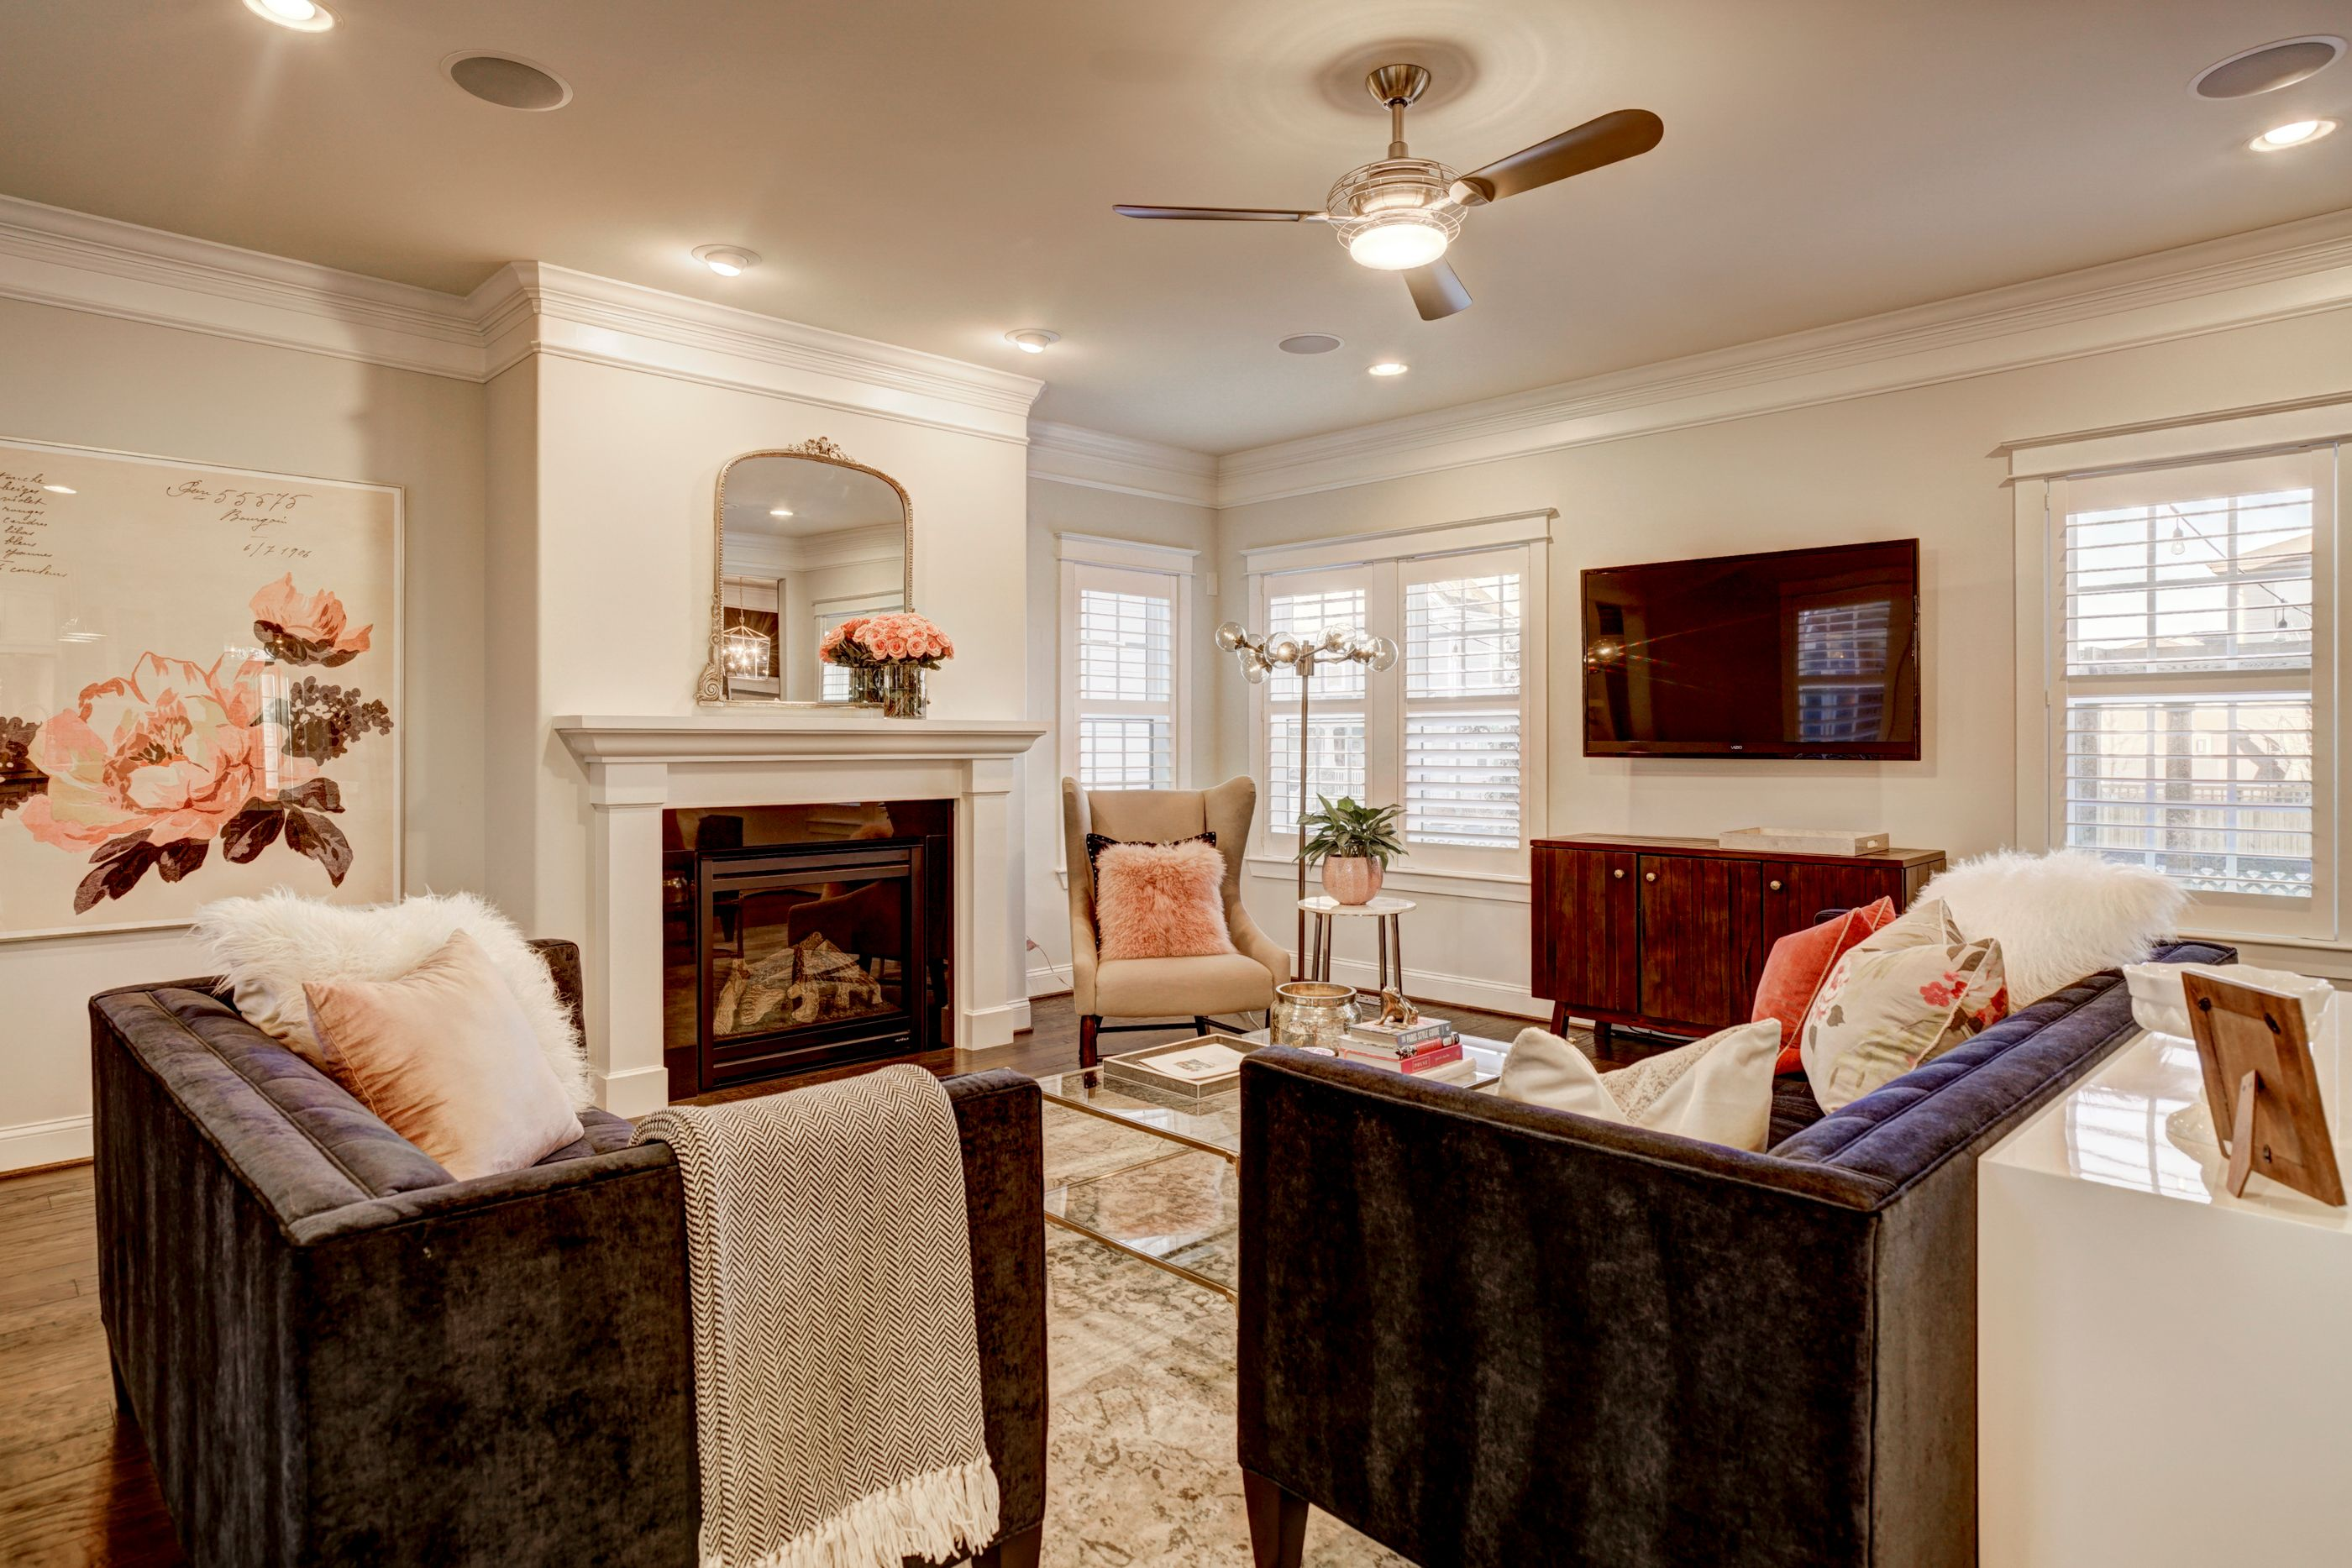 Living Area featured in The Chestertown - Shenandoah Collection By Parkwood Homes in Denver, CO